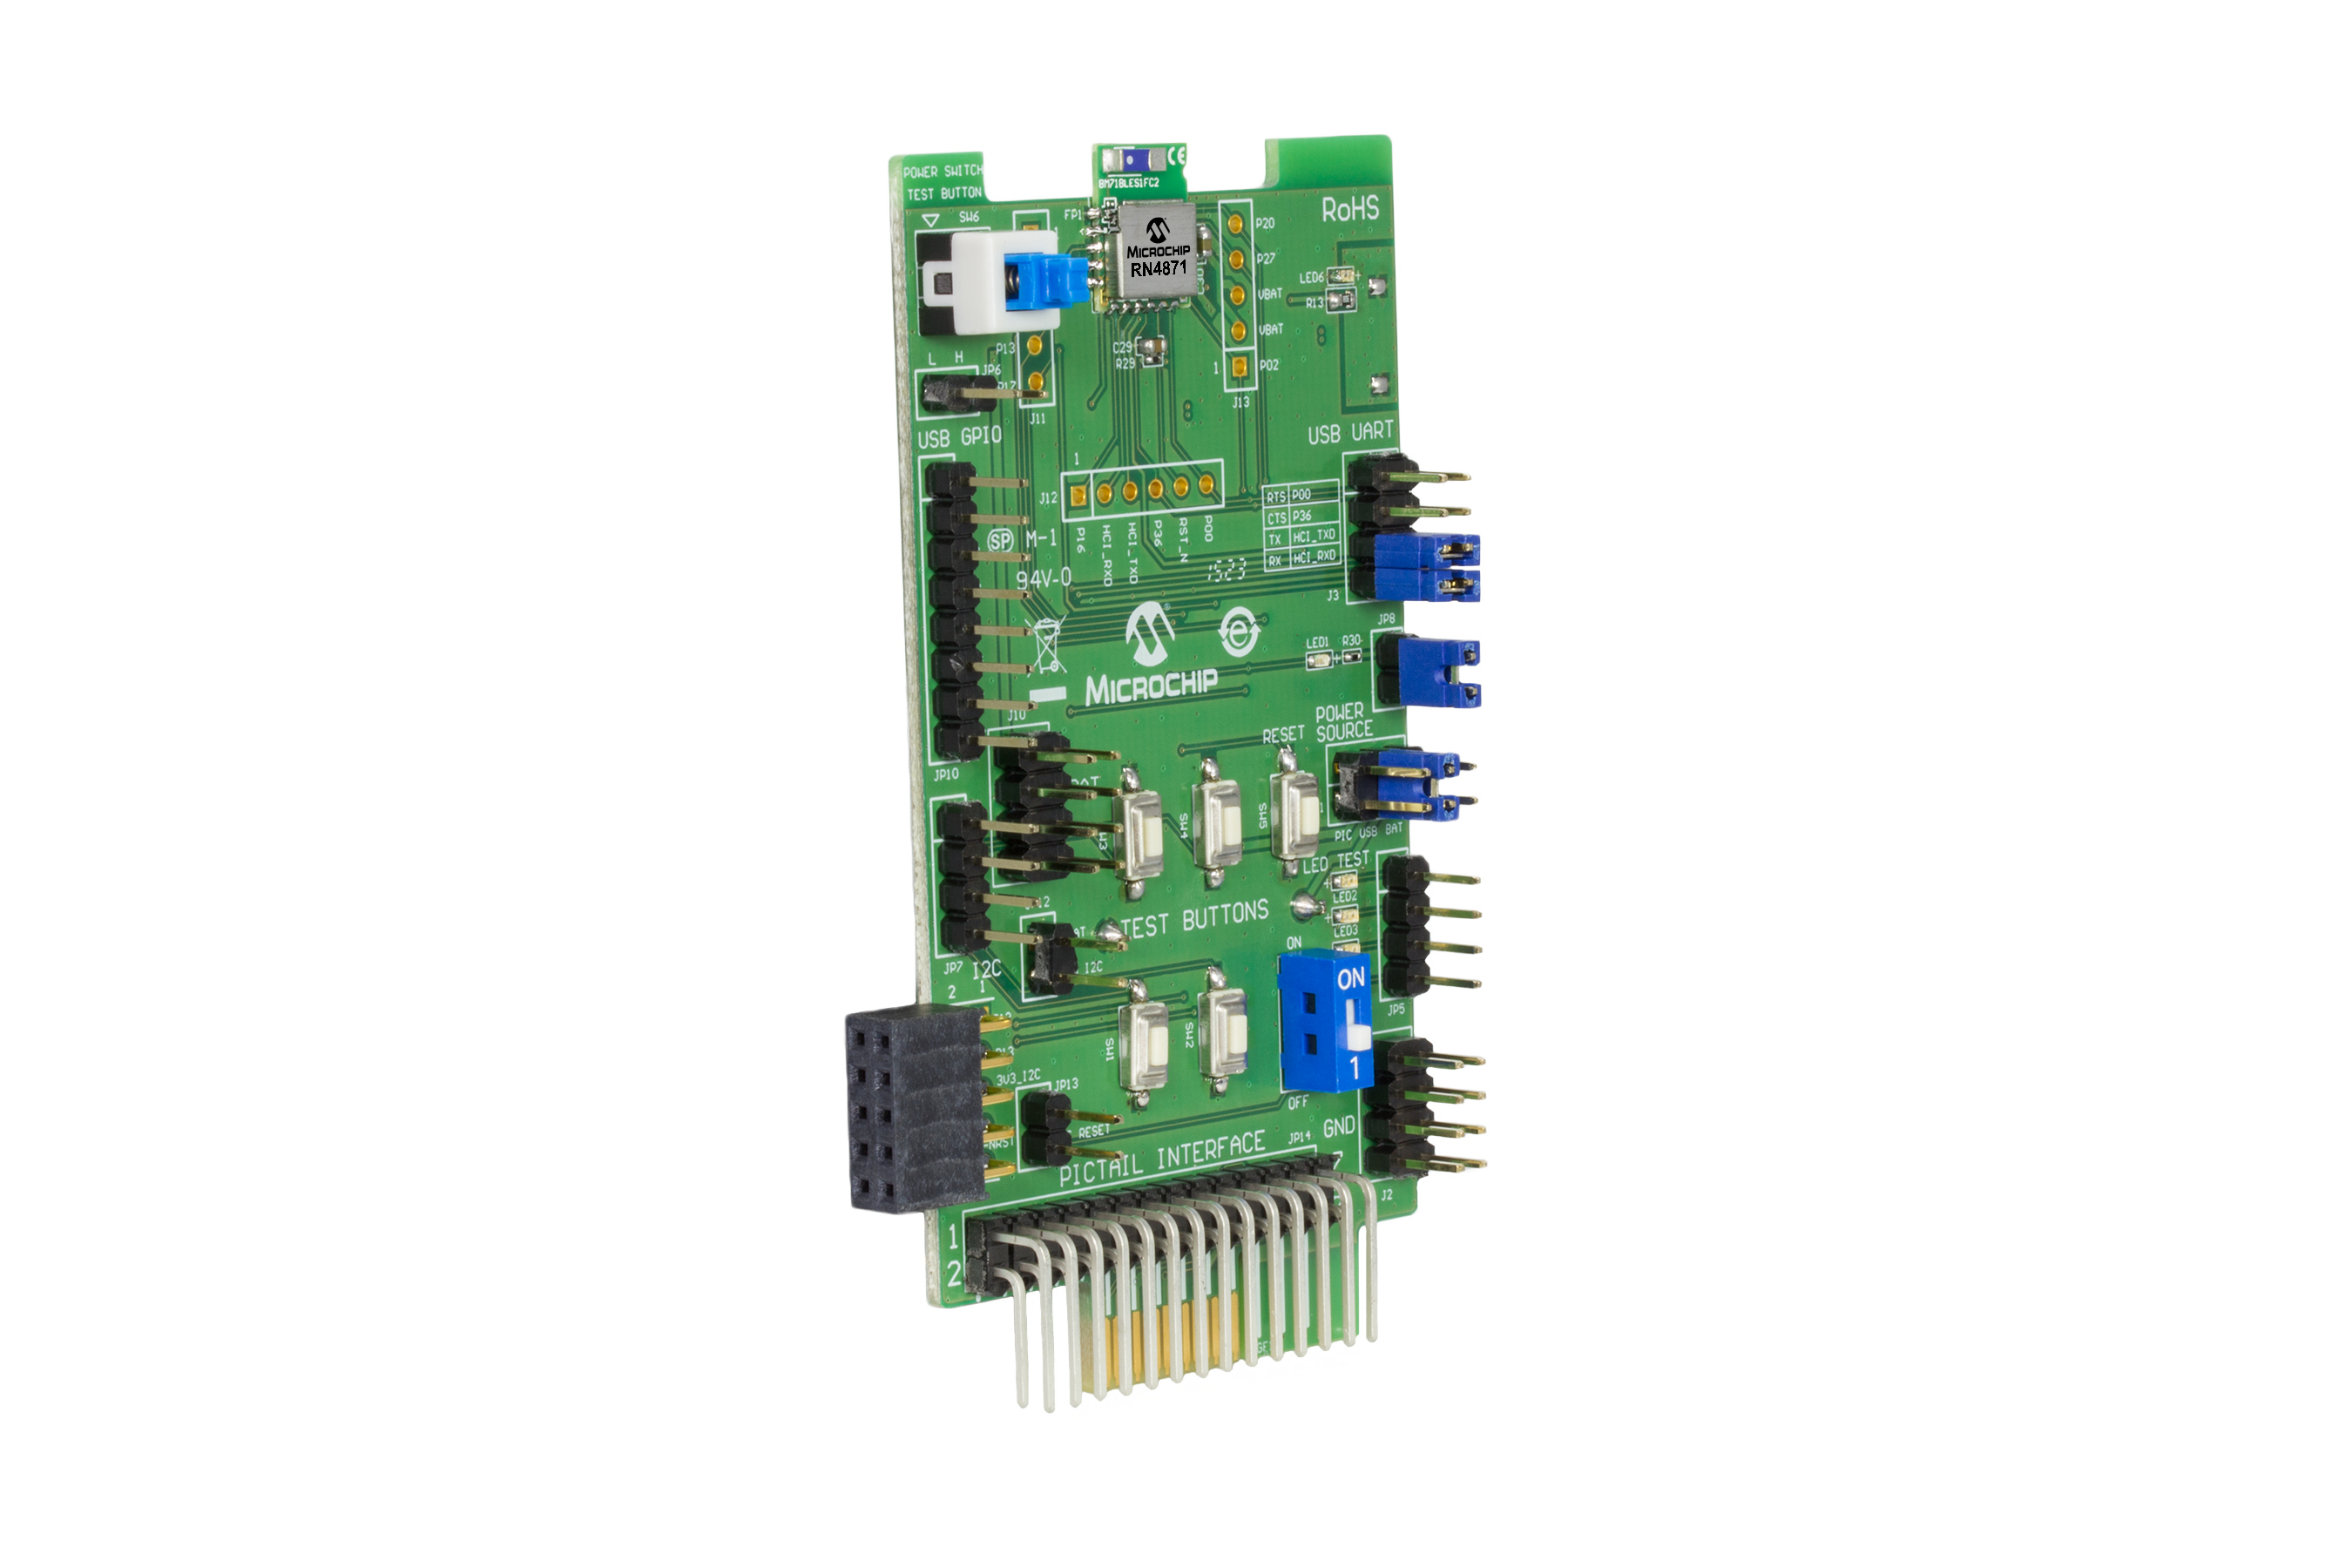 Development Tools Or Photo Of Computer Electronic Circuit Cpu Board Breaking Binary Code The Rn 4871 Pictail Is A Based On Ultra Compact Bluetooth 42 Low Energy Rn4871 Module Uses Simple Ascii Command